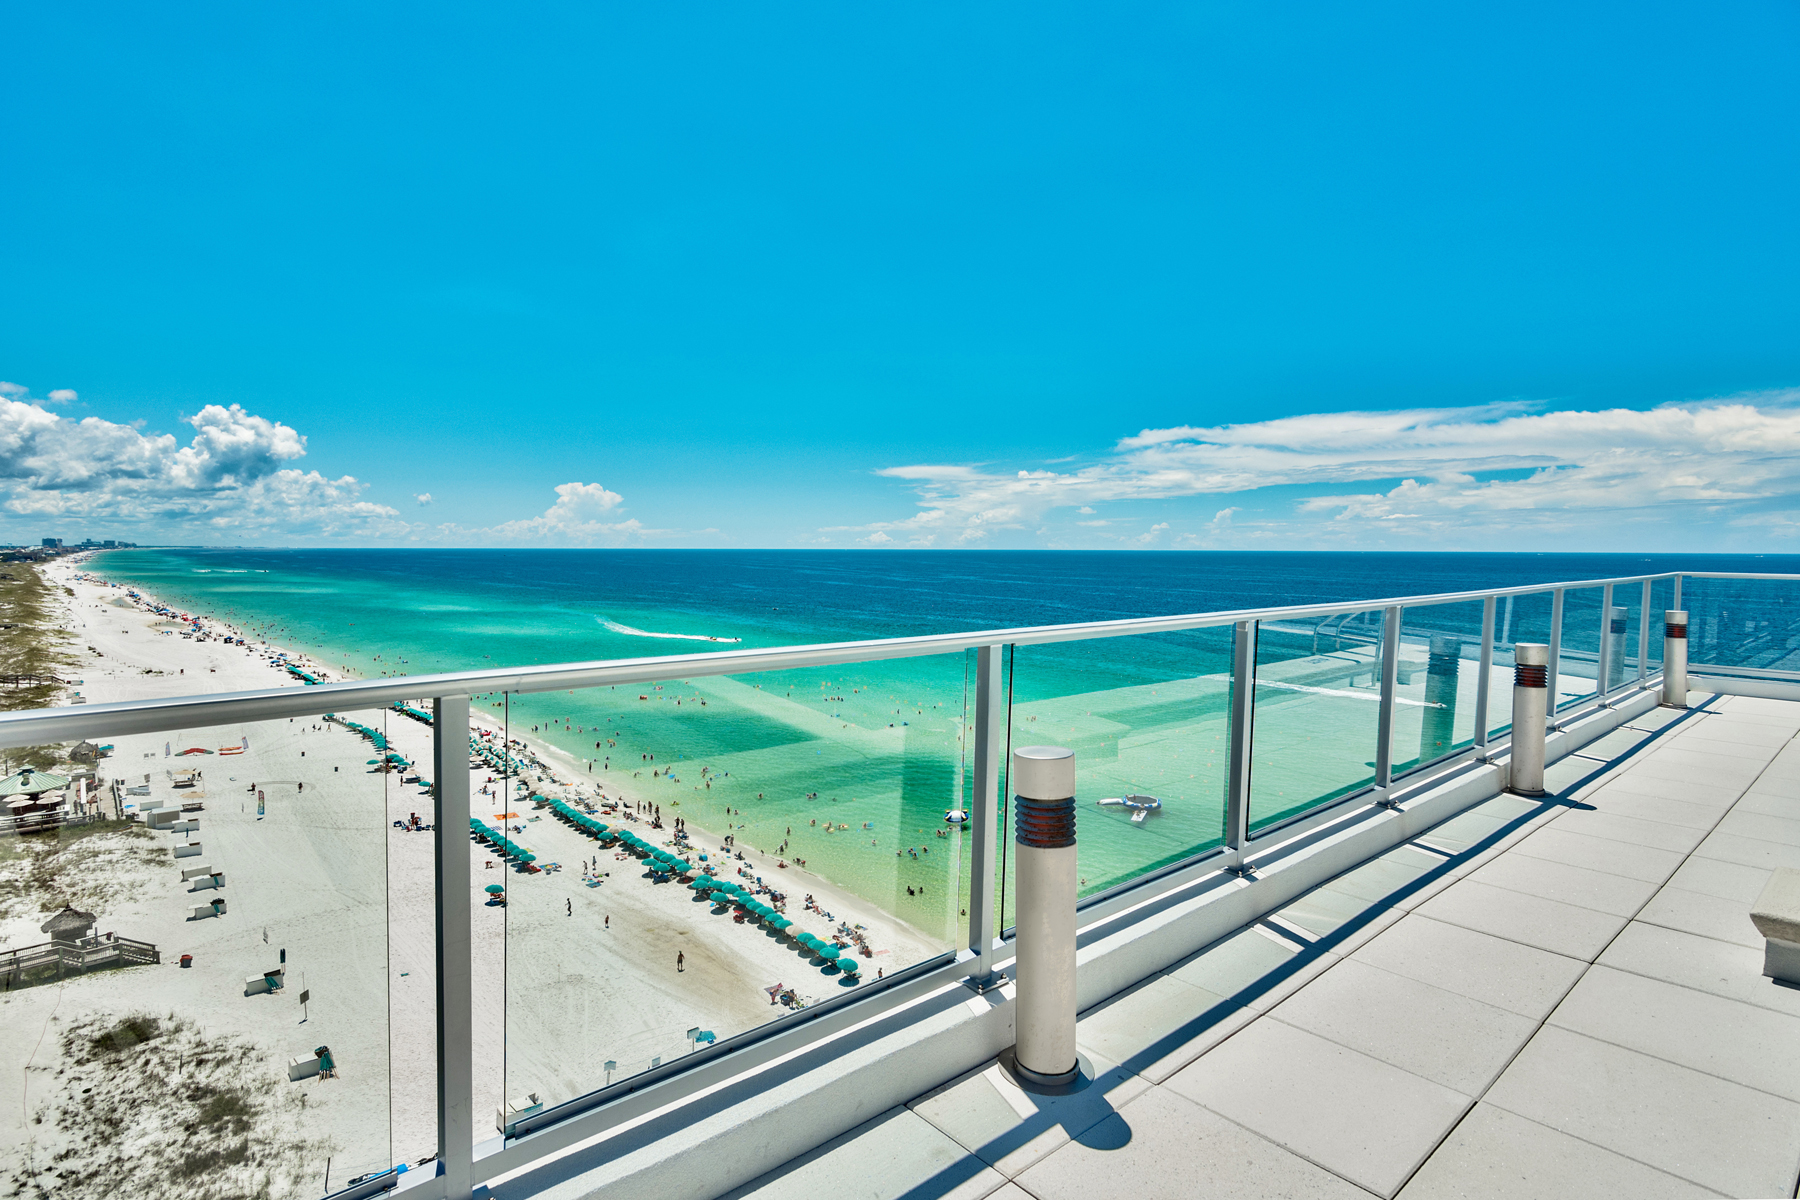 Condomínio para Venda às LUXURIOUS PRE-CONSTRUCTION OPPORTUNITY 1900 Scenic Hwy 98 902 Destin, Florida, 32541 Estados Unidos